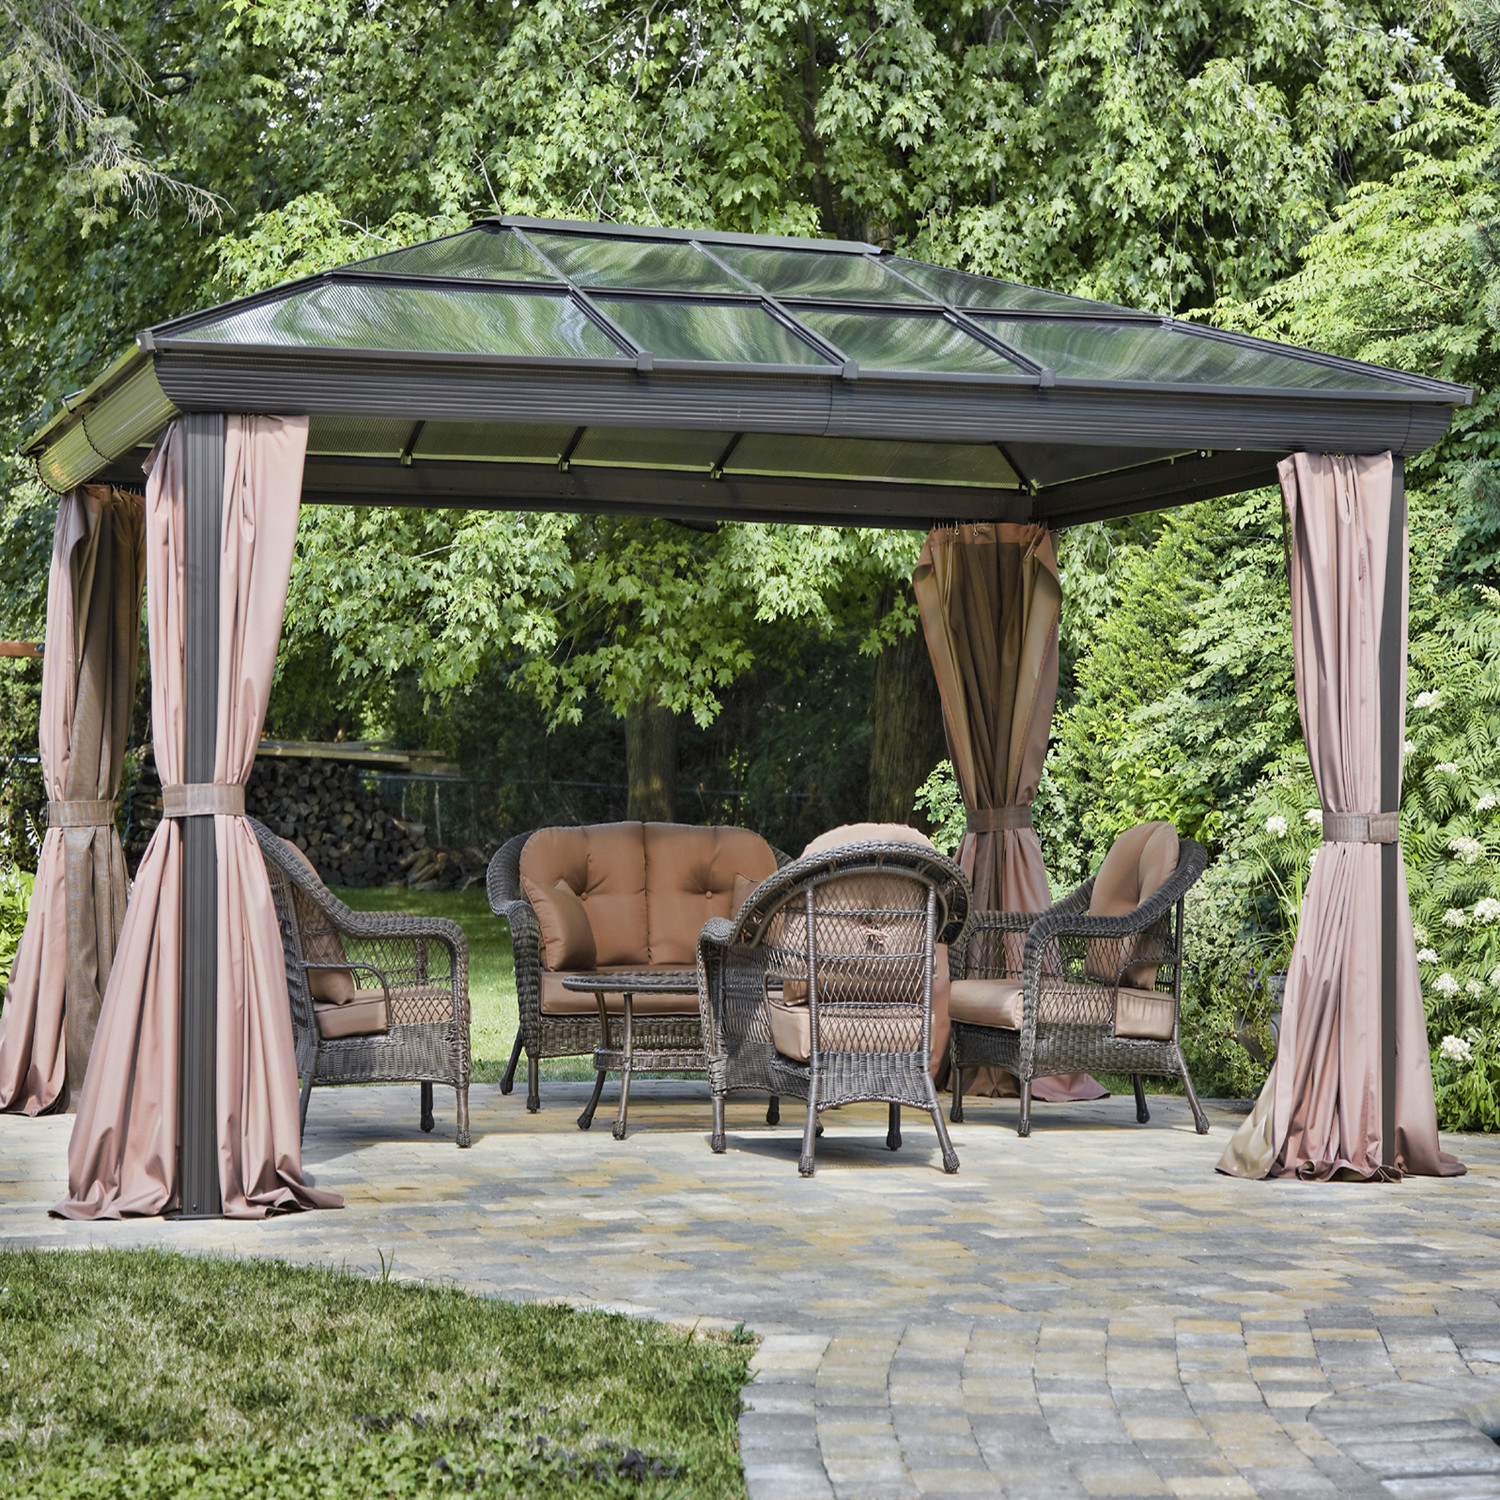 Backyard Gazebo Tent : Outdoor Patio Gazebo for Sale Canopy Patio Wedding Party Backyard Tent